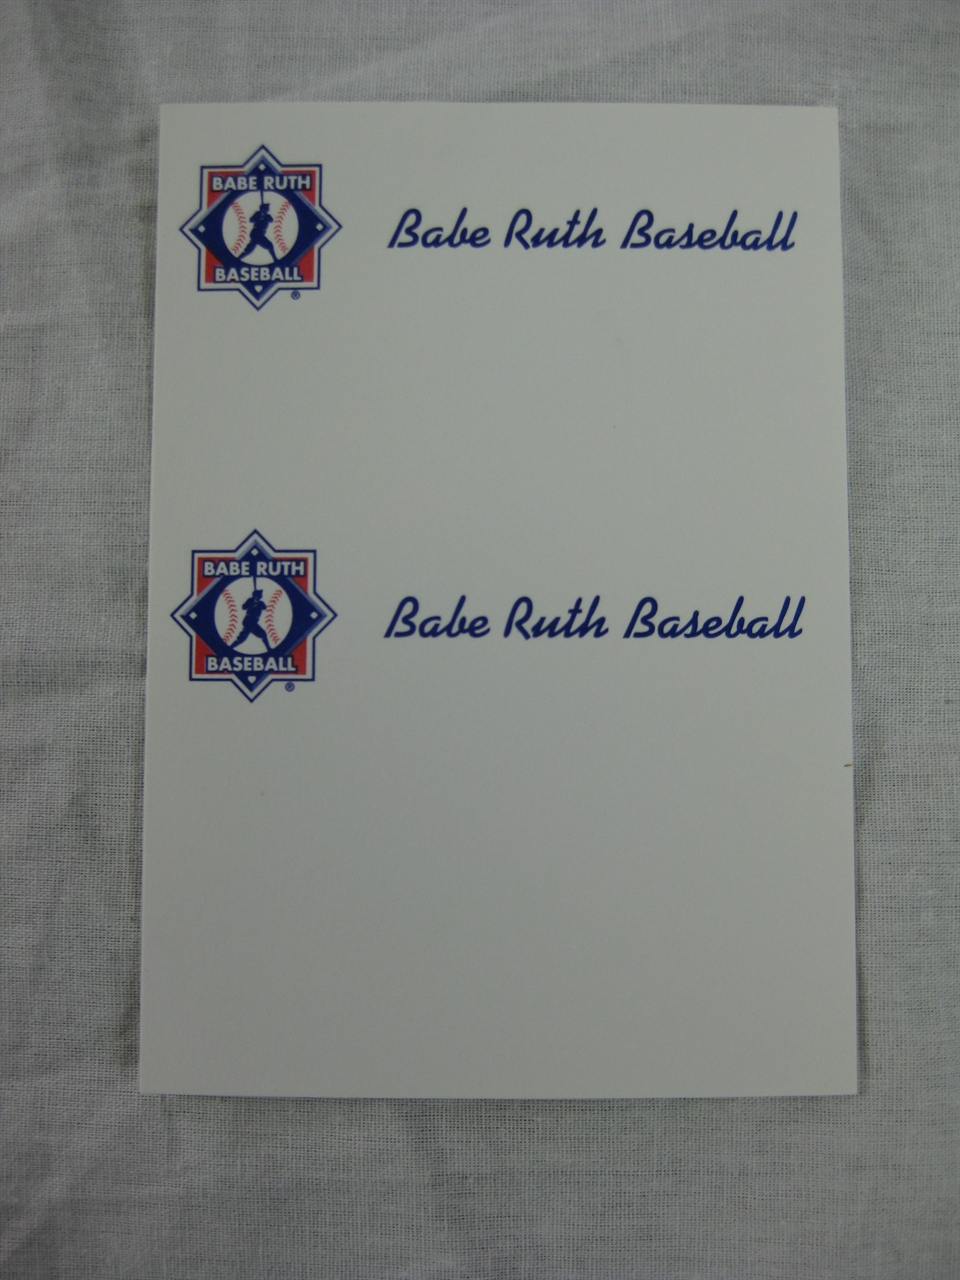 Baseball Business Cards Choice Image - Free Business Cards